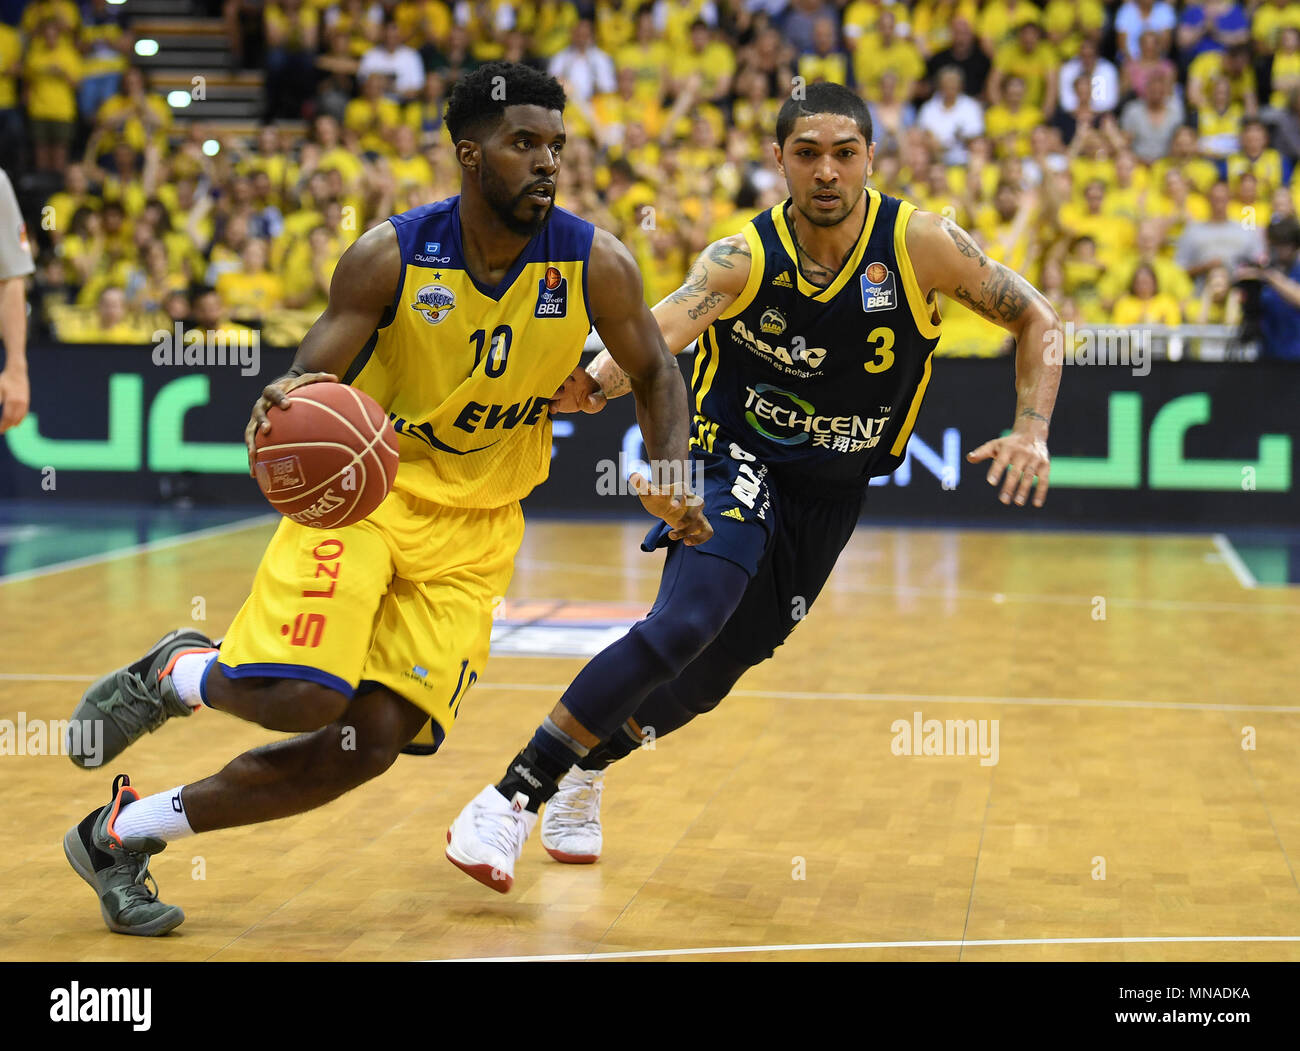 15 May 2018, Germany, Oldenburg: Bundesliga, EWE Baskets Oldenburg vs ALBA Berlin, championship round, quarter-final, in the EWE Arena. Oldenburg's Frantz Massenat (L) attempting to overcome Berlin's Peyton Siva. Photo: Carmen Jaspersen/dpa - Stock Image